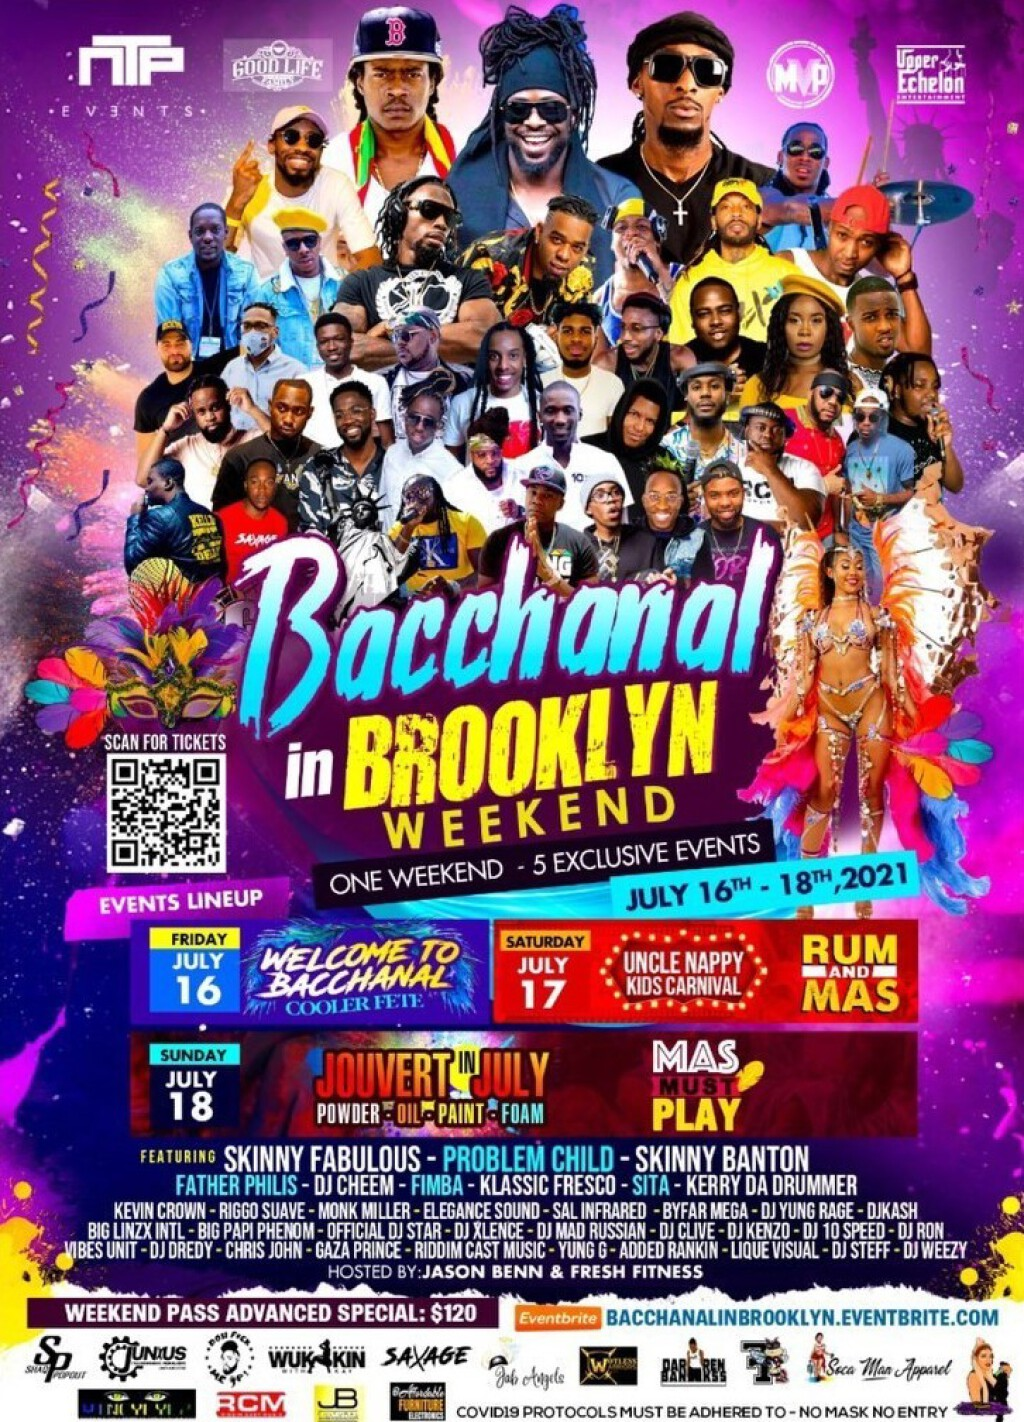 Welcome To Bacchanal Cooler Fete flyer or graphic.